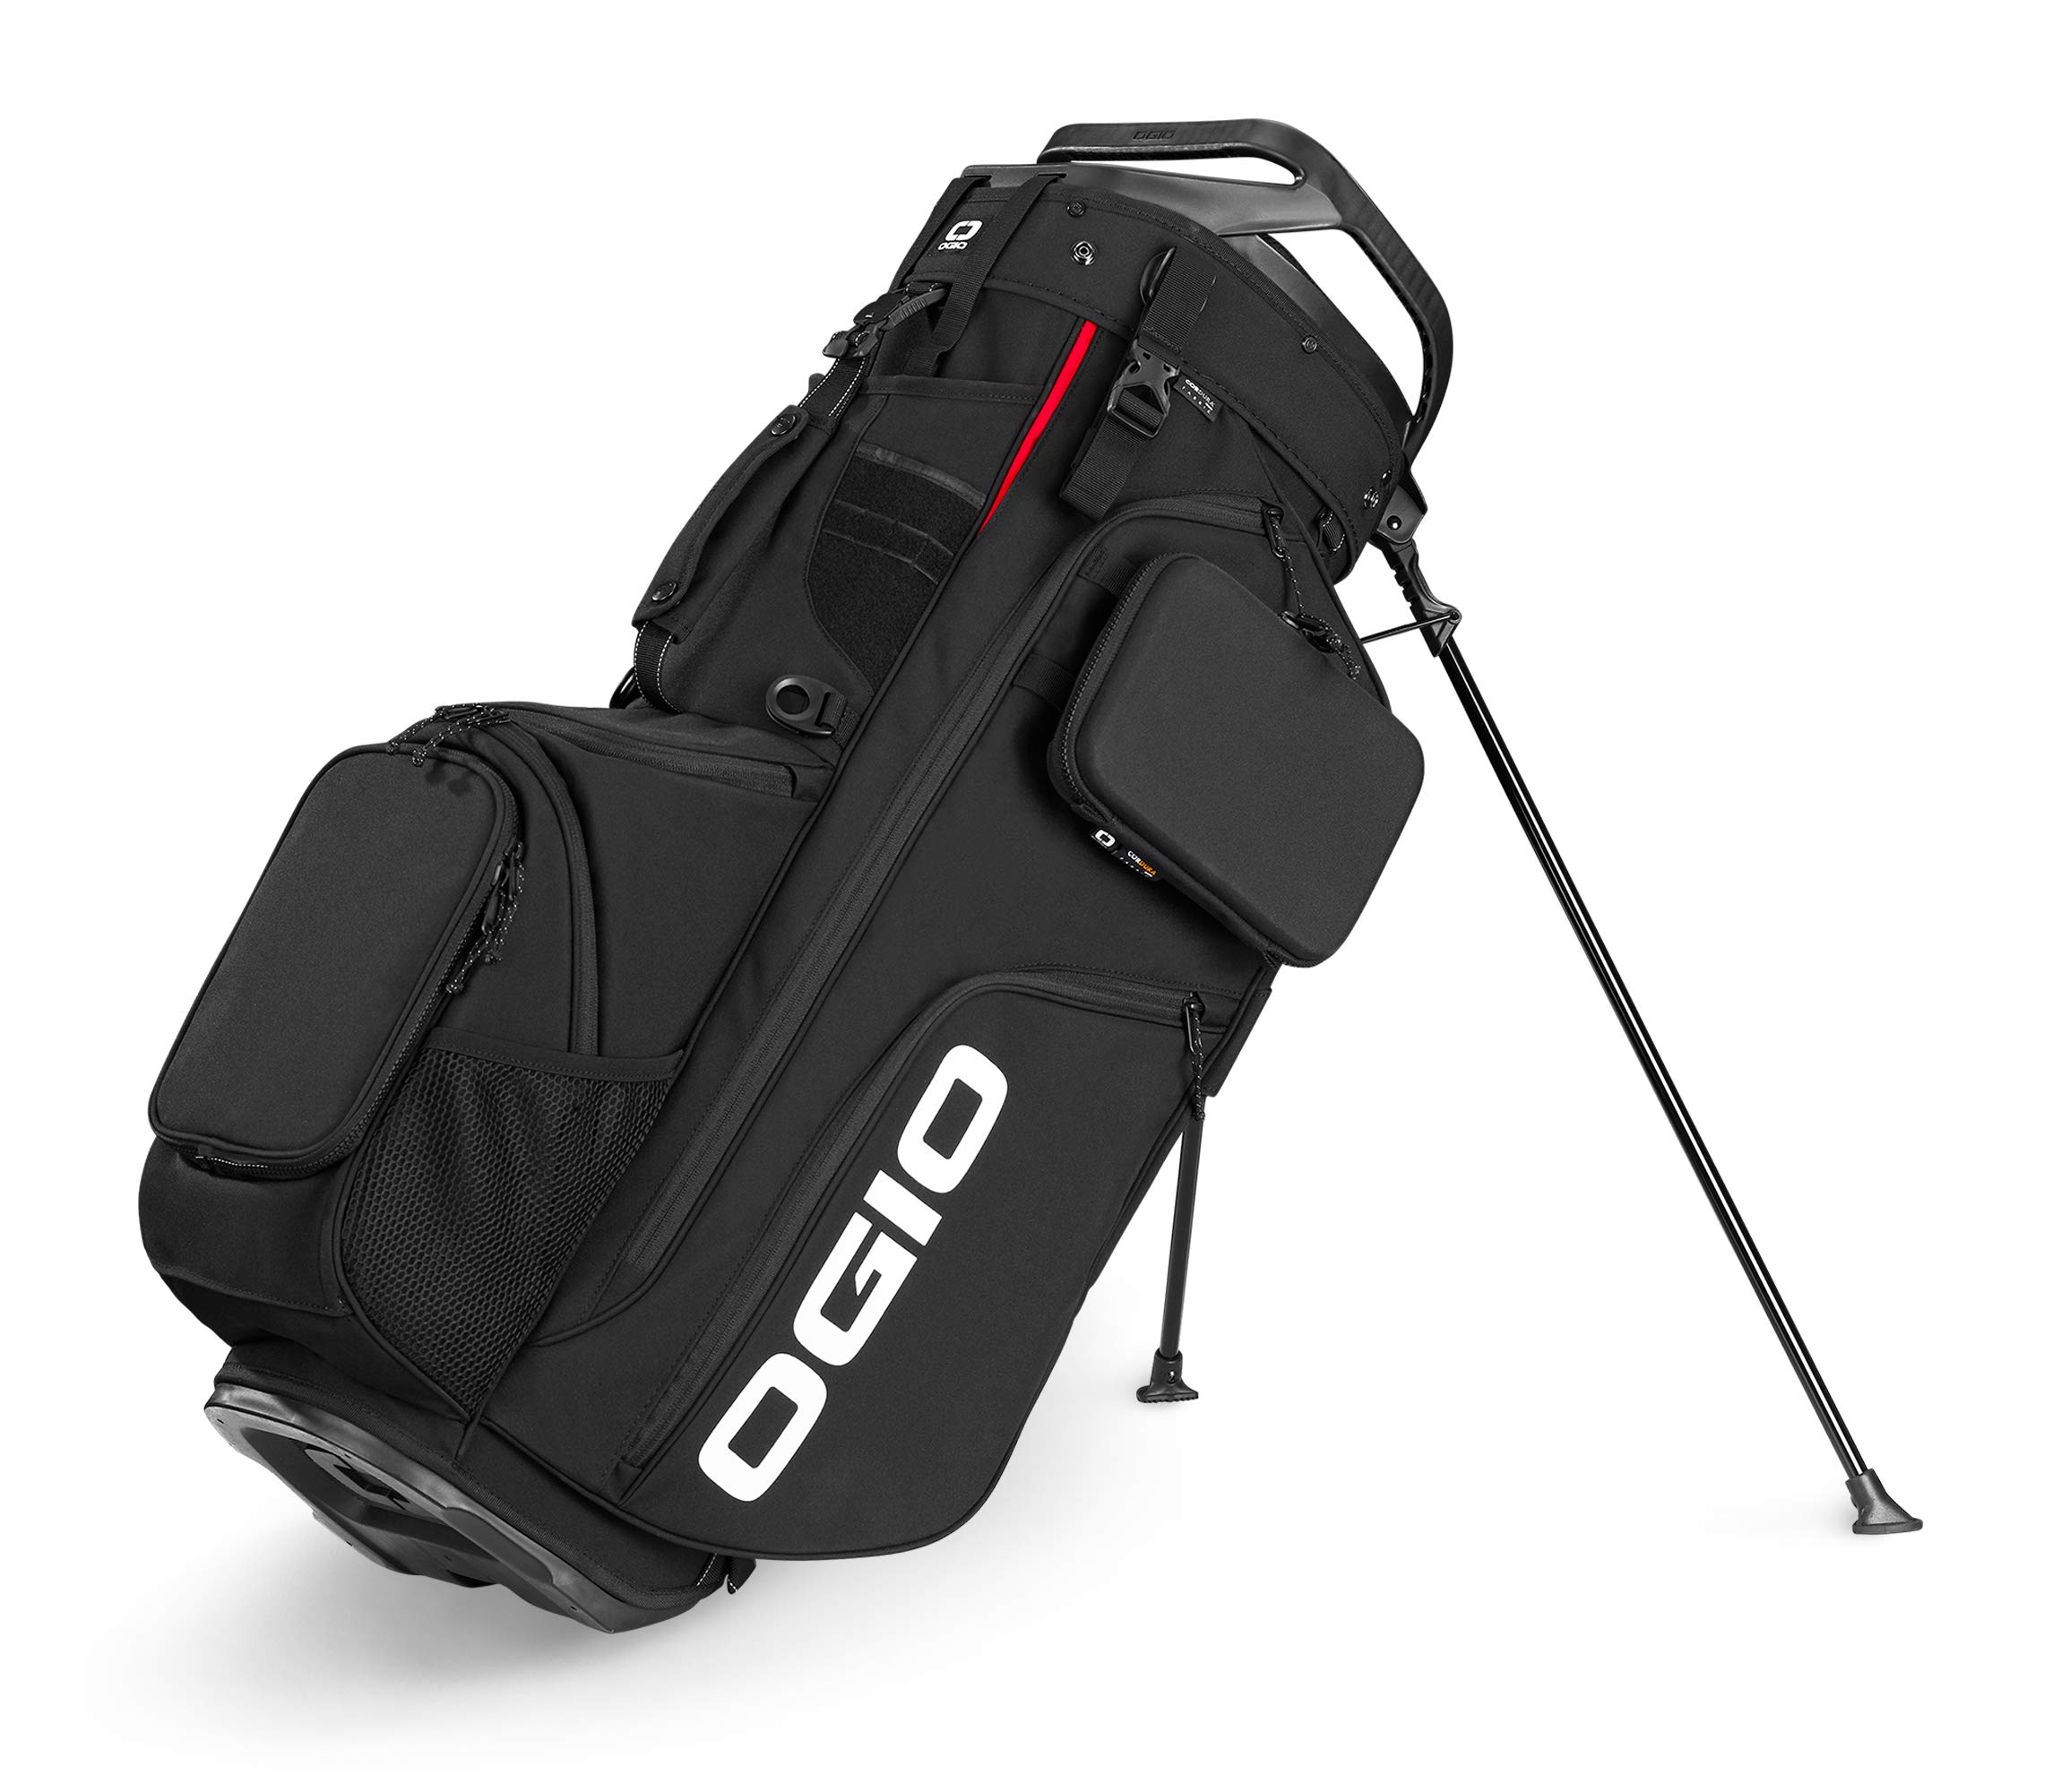 OGIO ALPHA Convoy 514 Golf Stand Bag, Black by OGIO